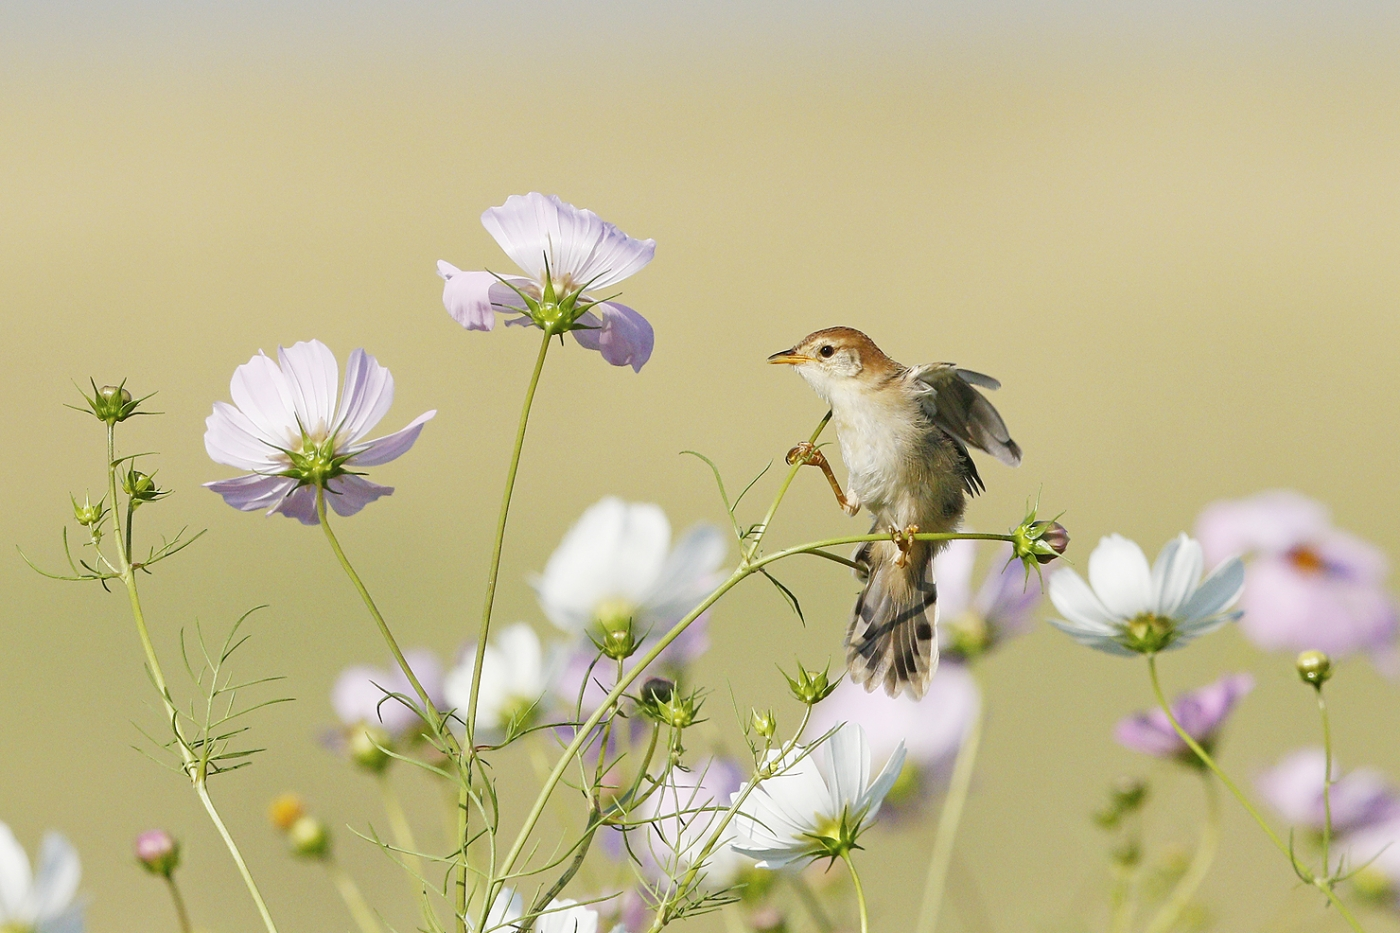 Leveillant's Cisticola – just add